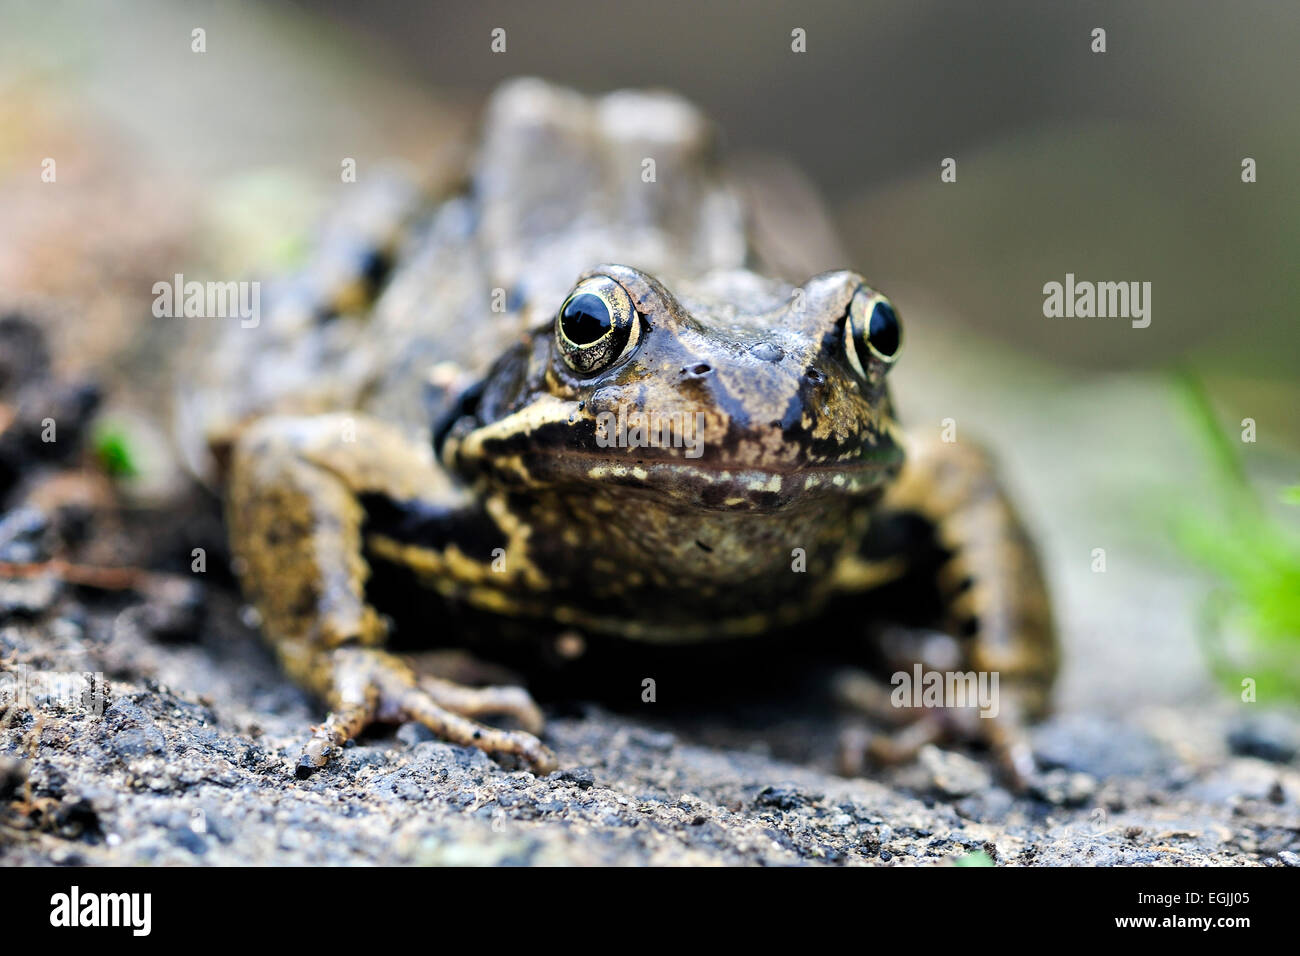 close up of Common frog, Rana temporaria in garden pond uk - Stock Image